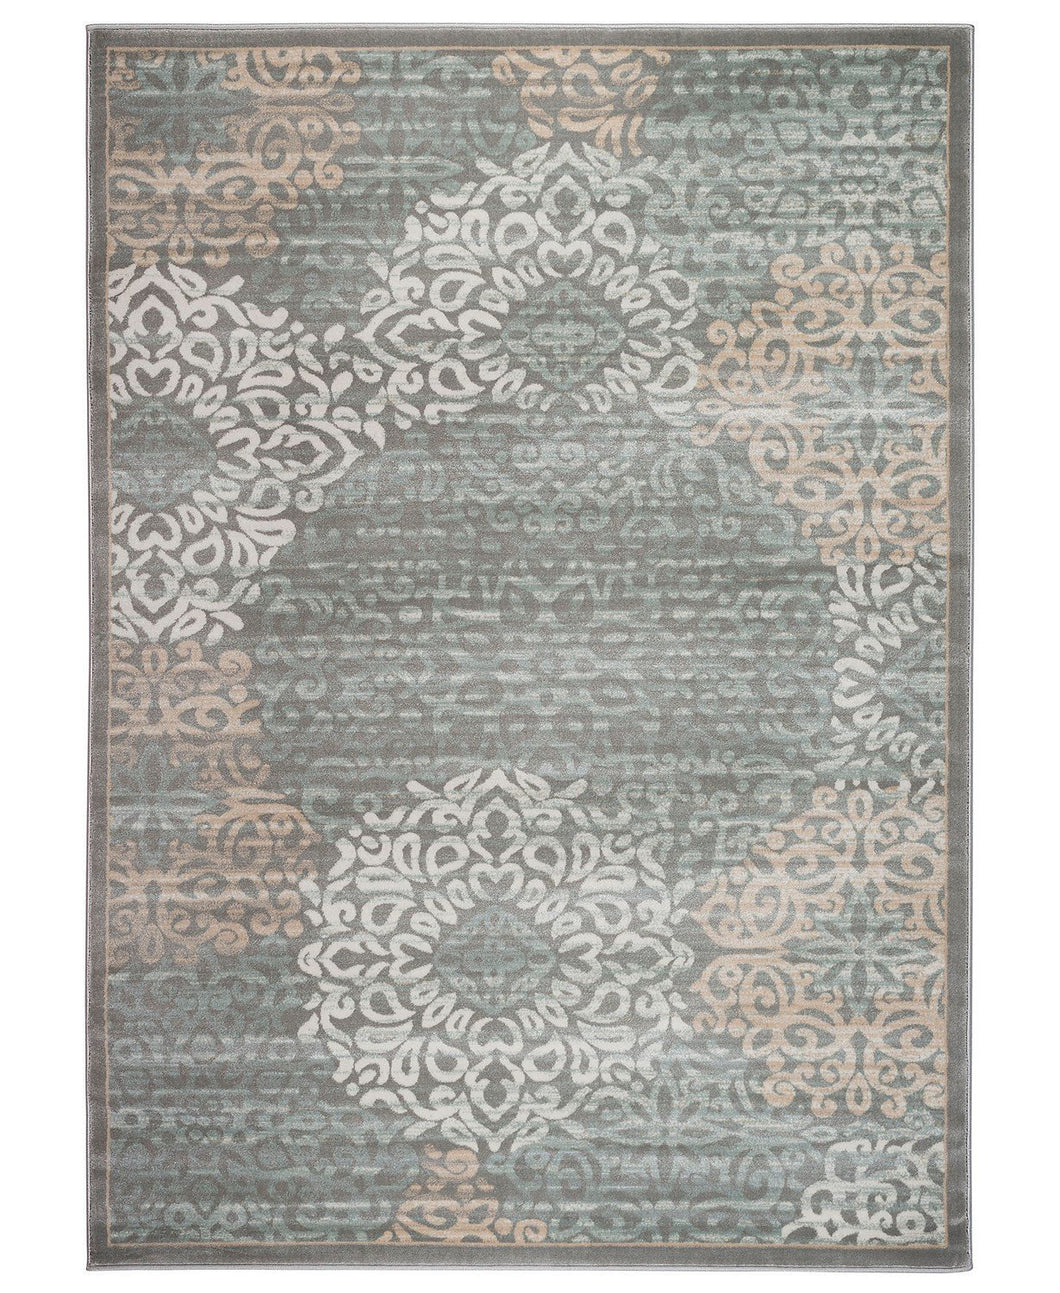 Area Rugs - Teramo Intrigue Grey